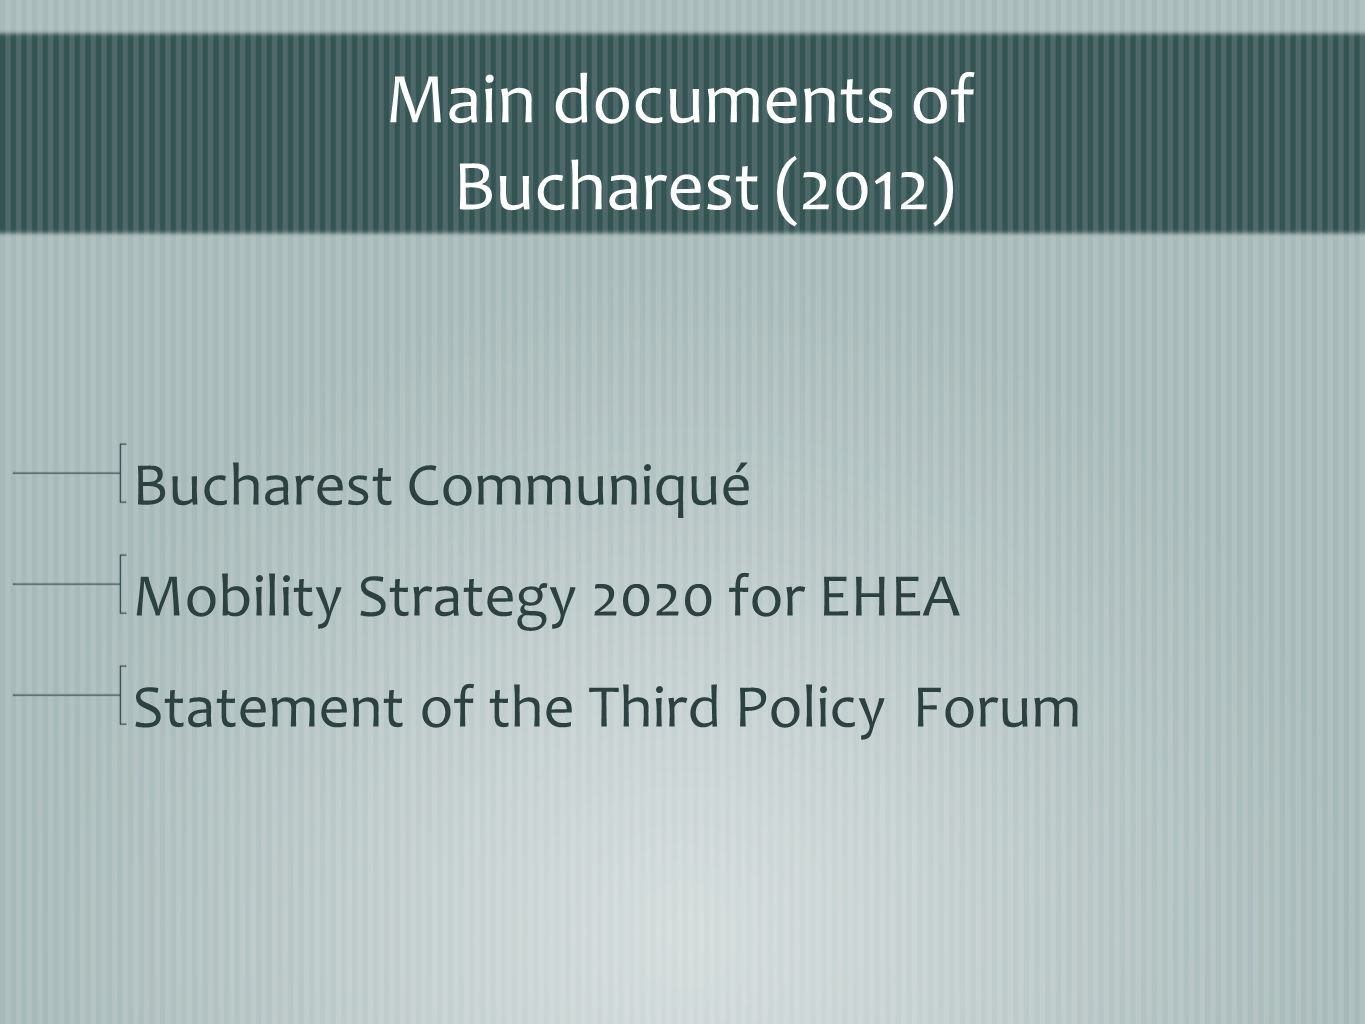 Main documents of Bucharest (2012) Bucharest Communiqué Mobility Strategy 2020 for EHEA Statement of the Third Policy Forum